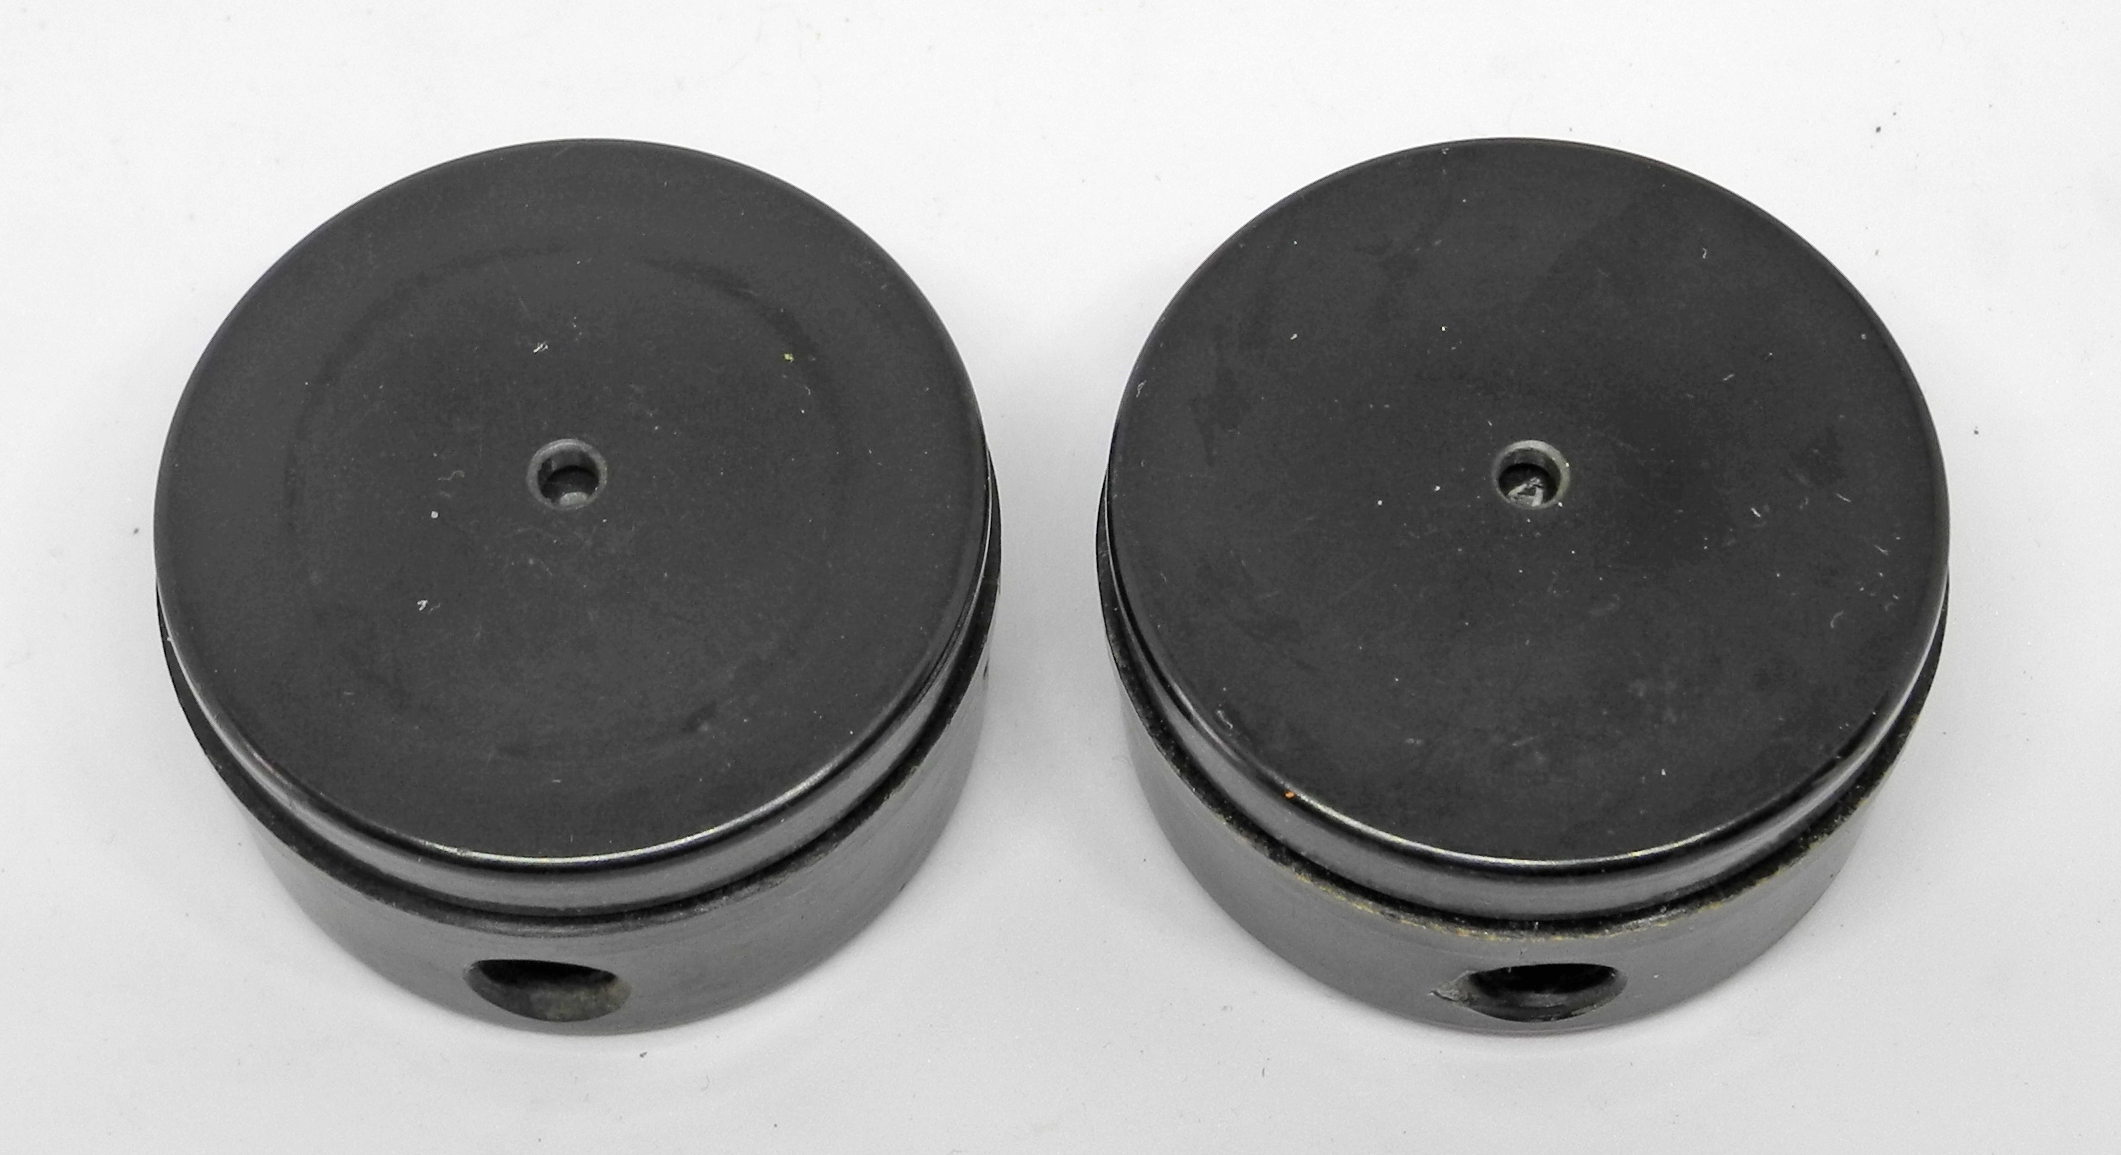 RAF Type 32 helmet receivers